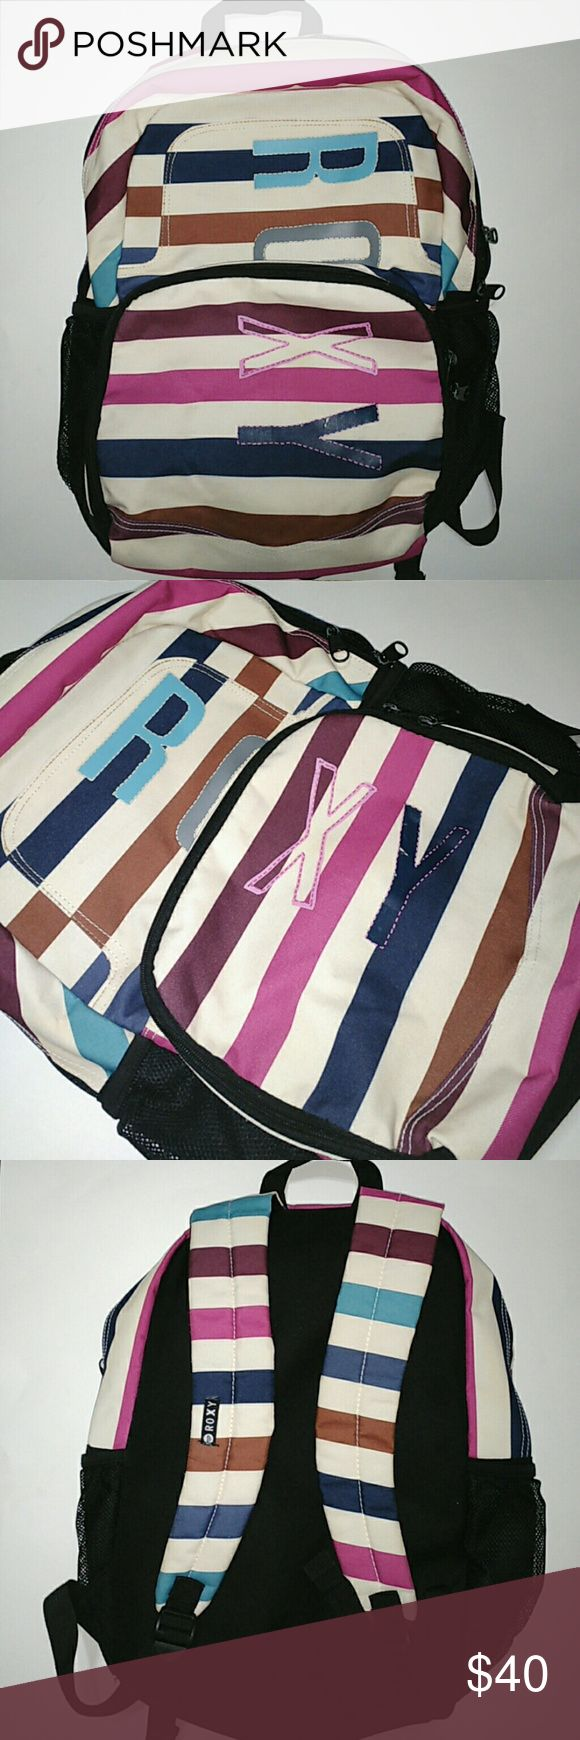 """Roxy Girl Multi Color Stripe  Backpack Roxy Girl Multi Color Stripe  Backpack. Mesh water bottle holder on both sides of bag. Small compartment with small pockets/compartments and large main compartment. excellent condition just some rubbing off of paint on the """"Y"""" of the Roxy label as seen in photos. Roxy Bags Backpacks"""